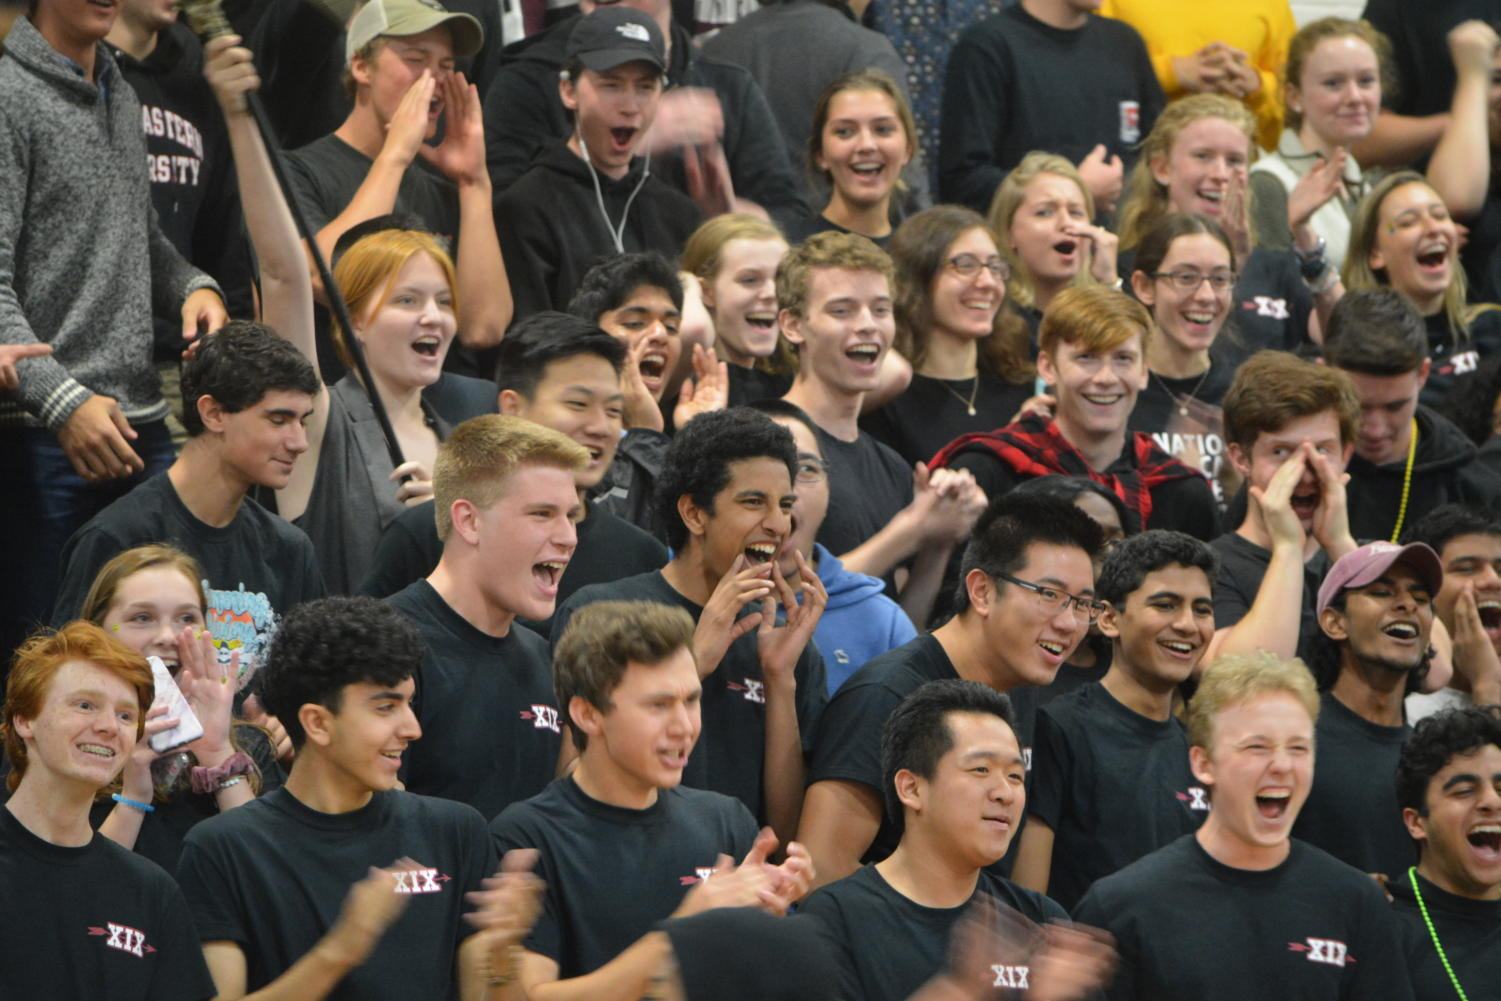 School Spirit-- Seniors cheer at the pep rally. The event took place on September 28.